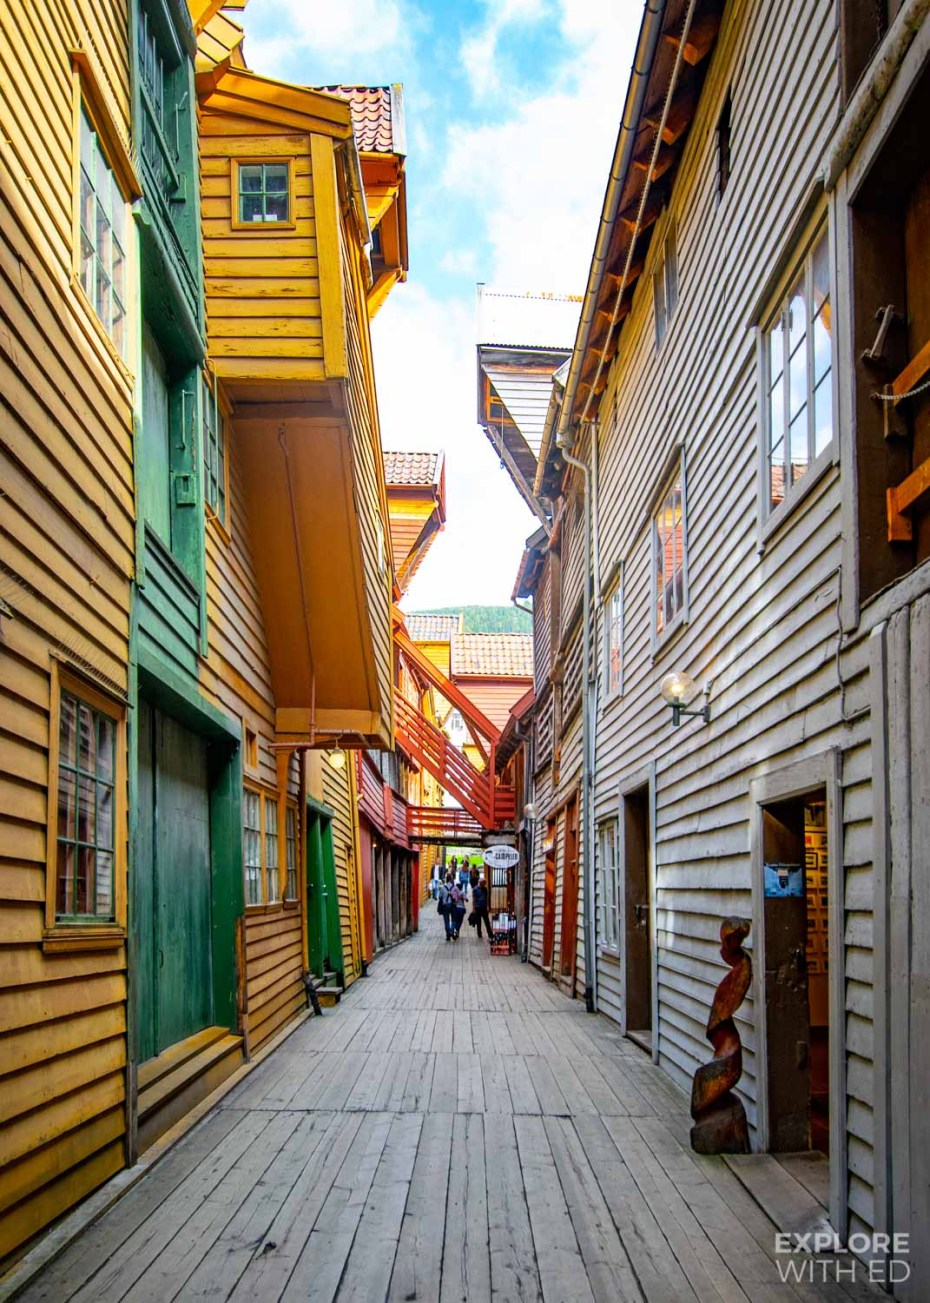 The UNESCO Bergen Harbour with colourful wooden buildings